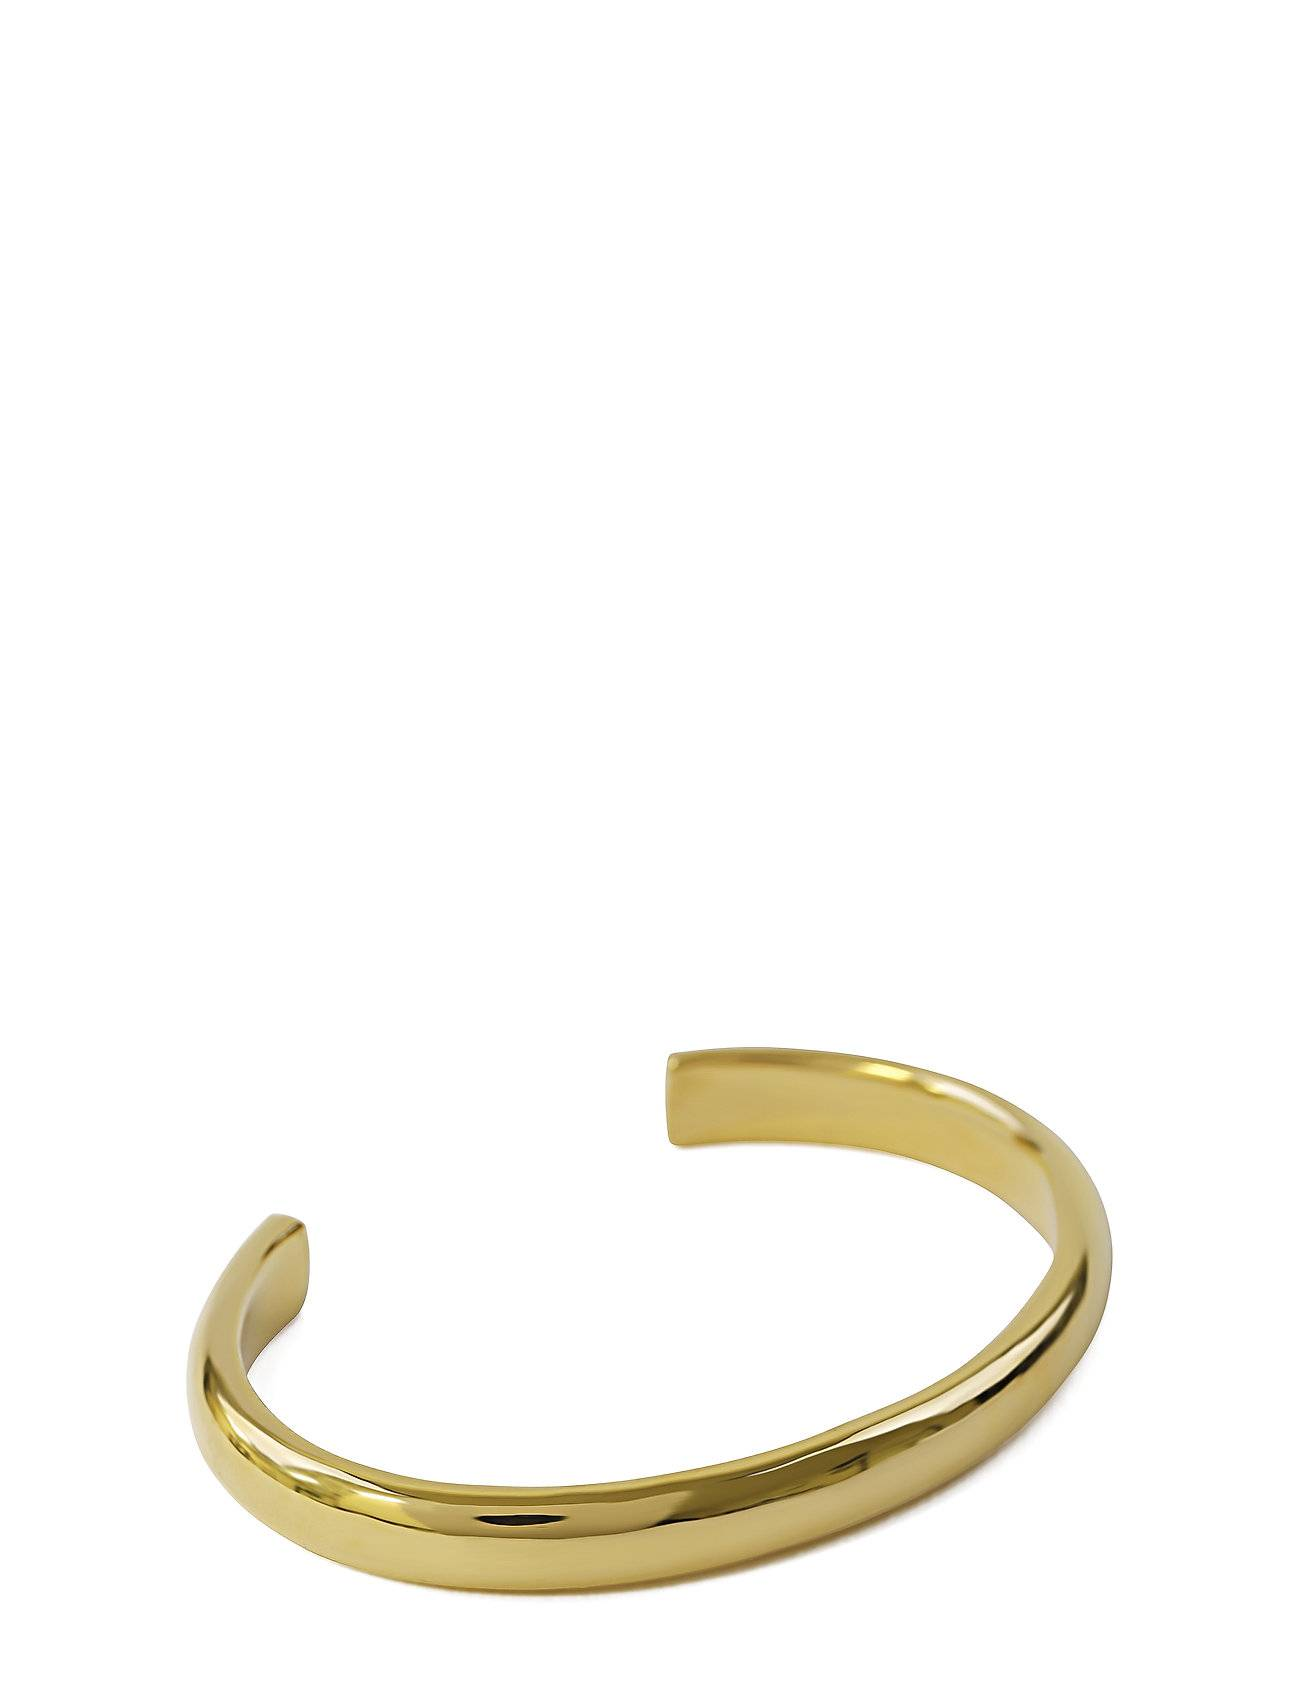 Syster P Bolded Bangle Gold Rannekoru Korut Kulta Syster P